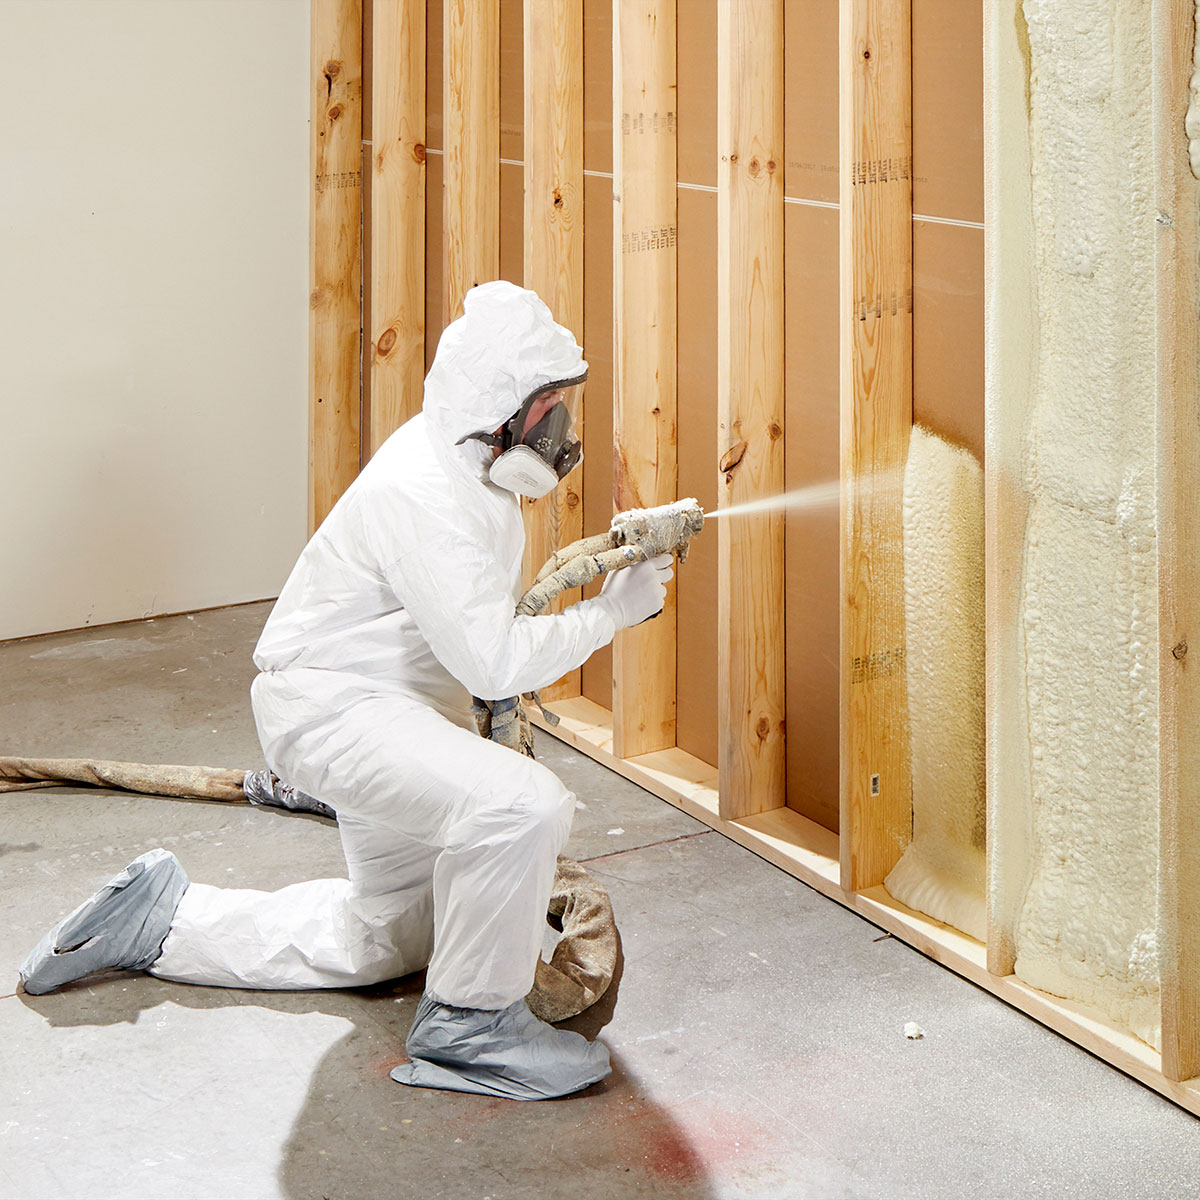 Spray Foam Insulation Concepts and Applications